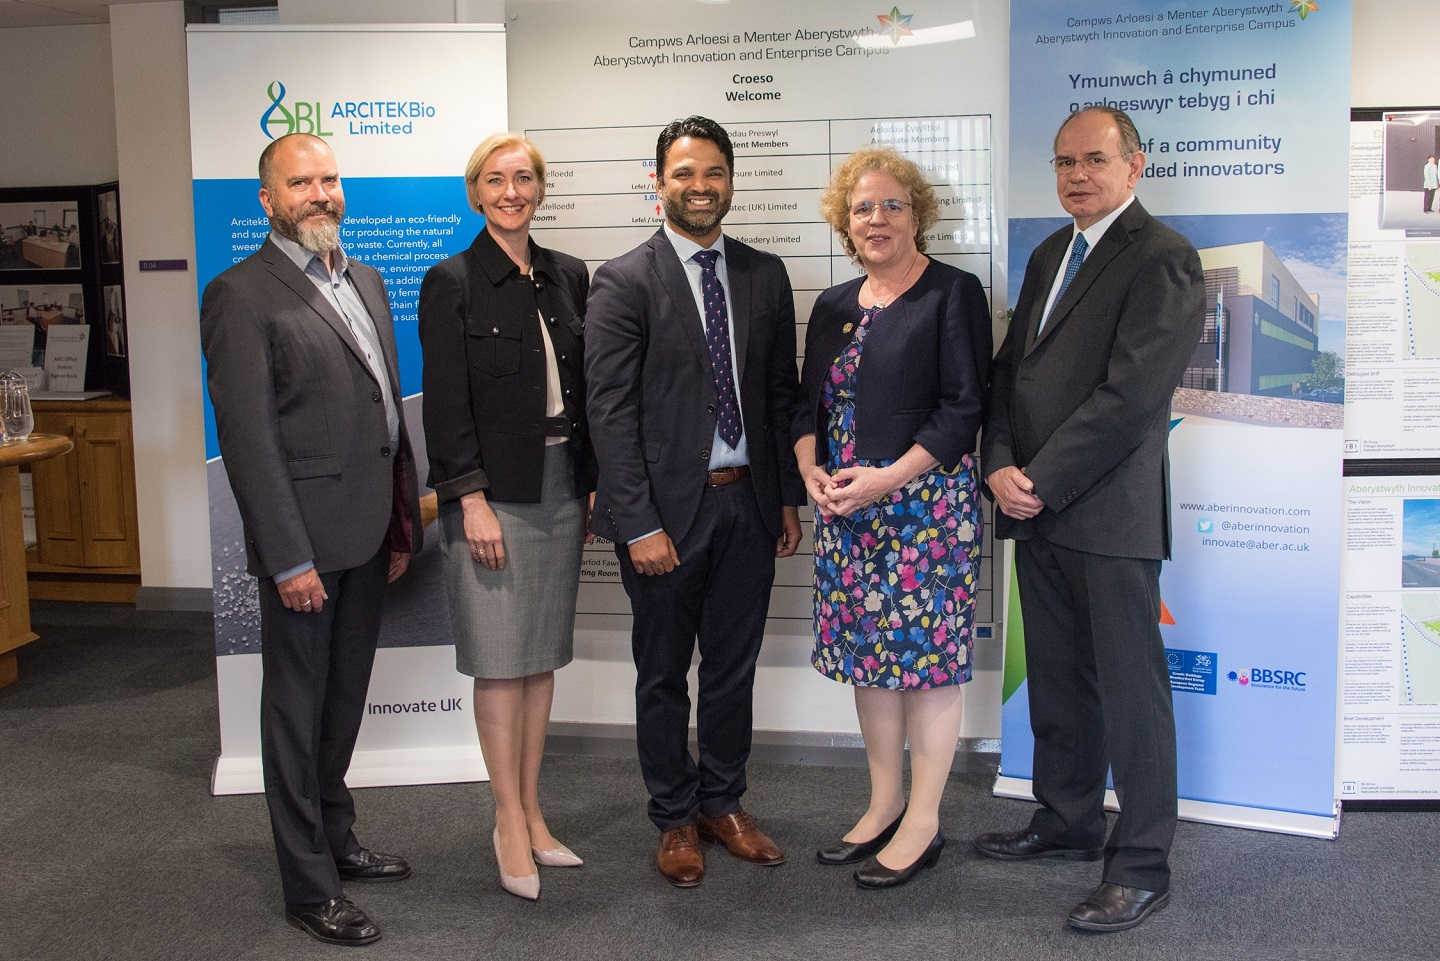 From the left: Dr David Bryant BEACON, Dr Rhian Hayward Aber Innovation, Dr Ahbishek Somani, Founder ARCITEKBIO, Professor Elizabeth Treasure Vice Chancellor Aberystwyth University, and Dr Joe Gallagher BEACON, at the AberInnovation Office.